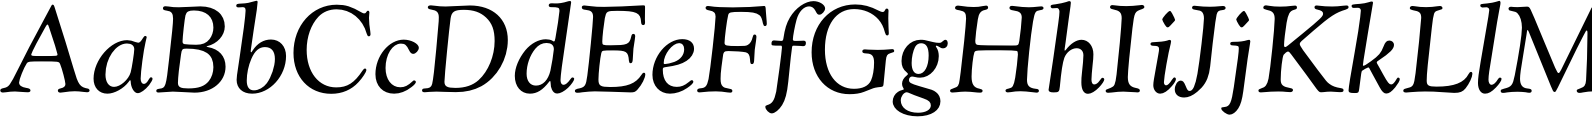 Goudy Catalogue Regular Italic Font